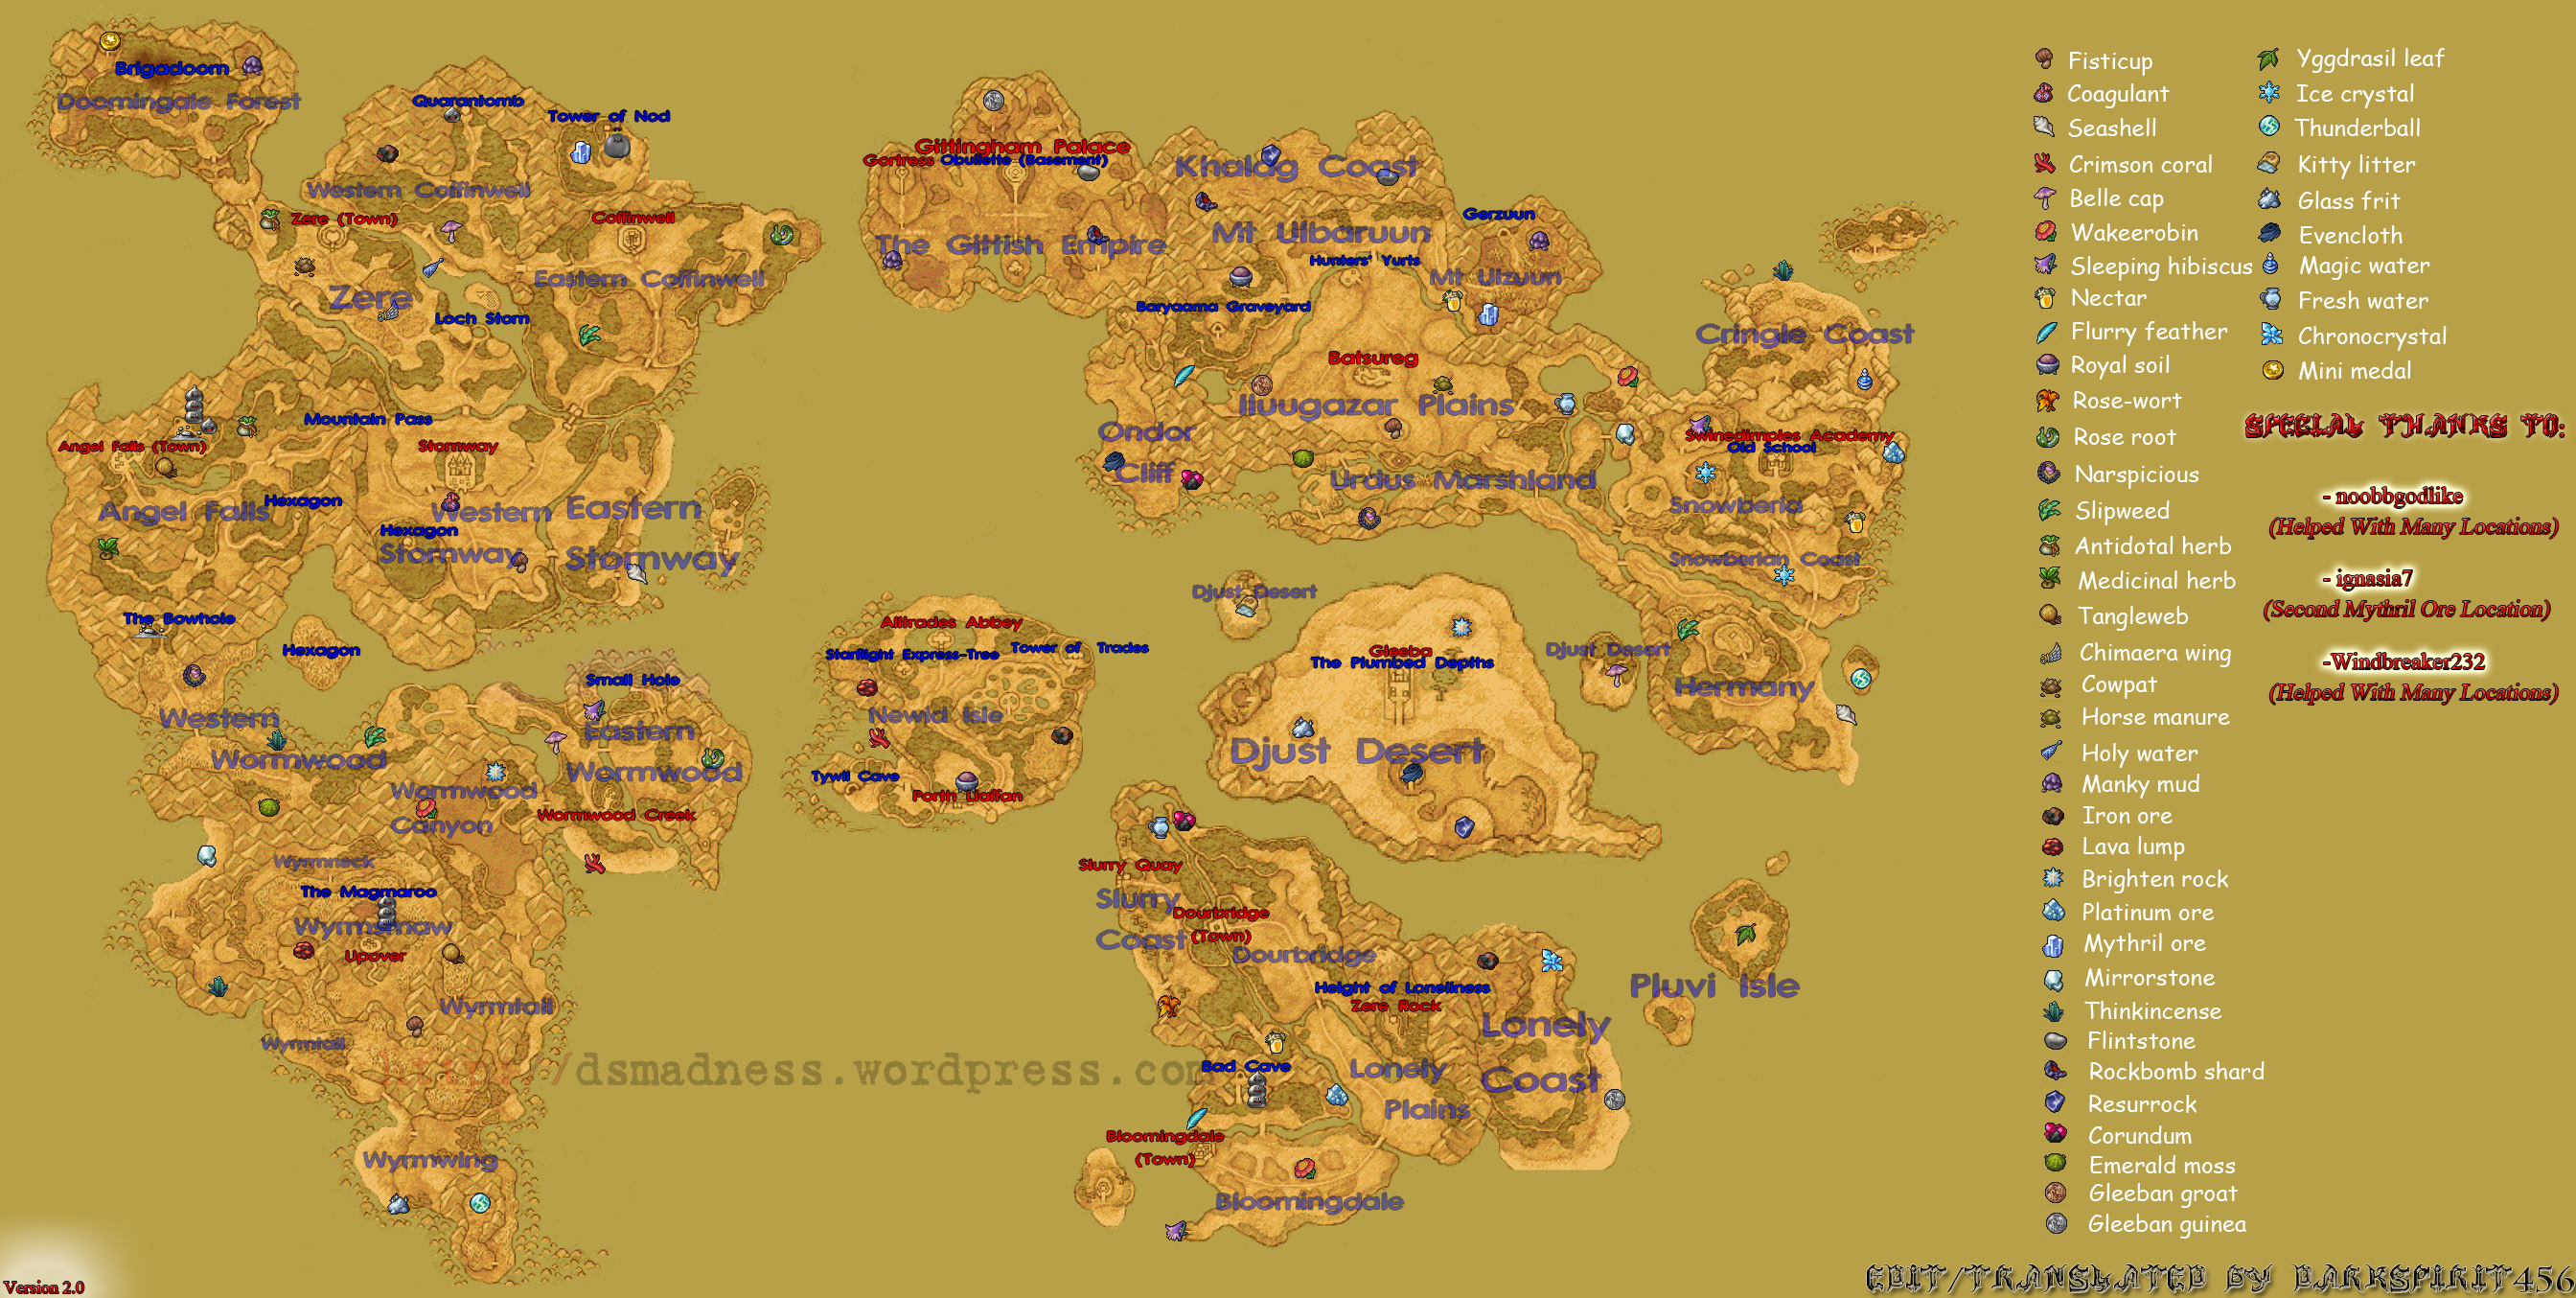 Dragon Quest IX World Map | DS Madness %#@*!